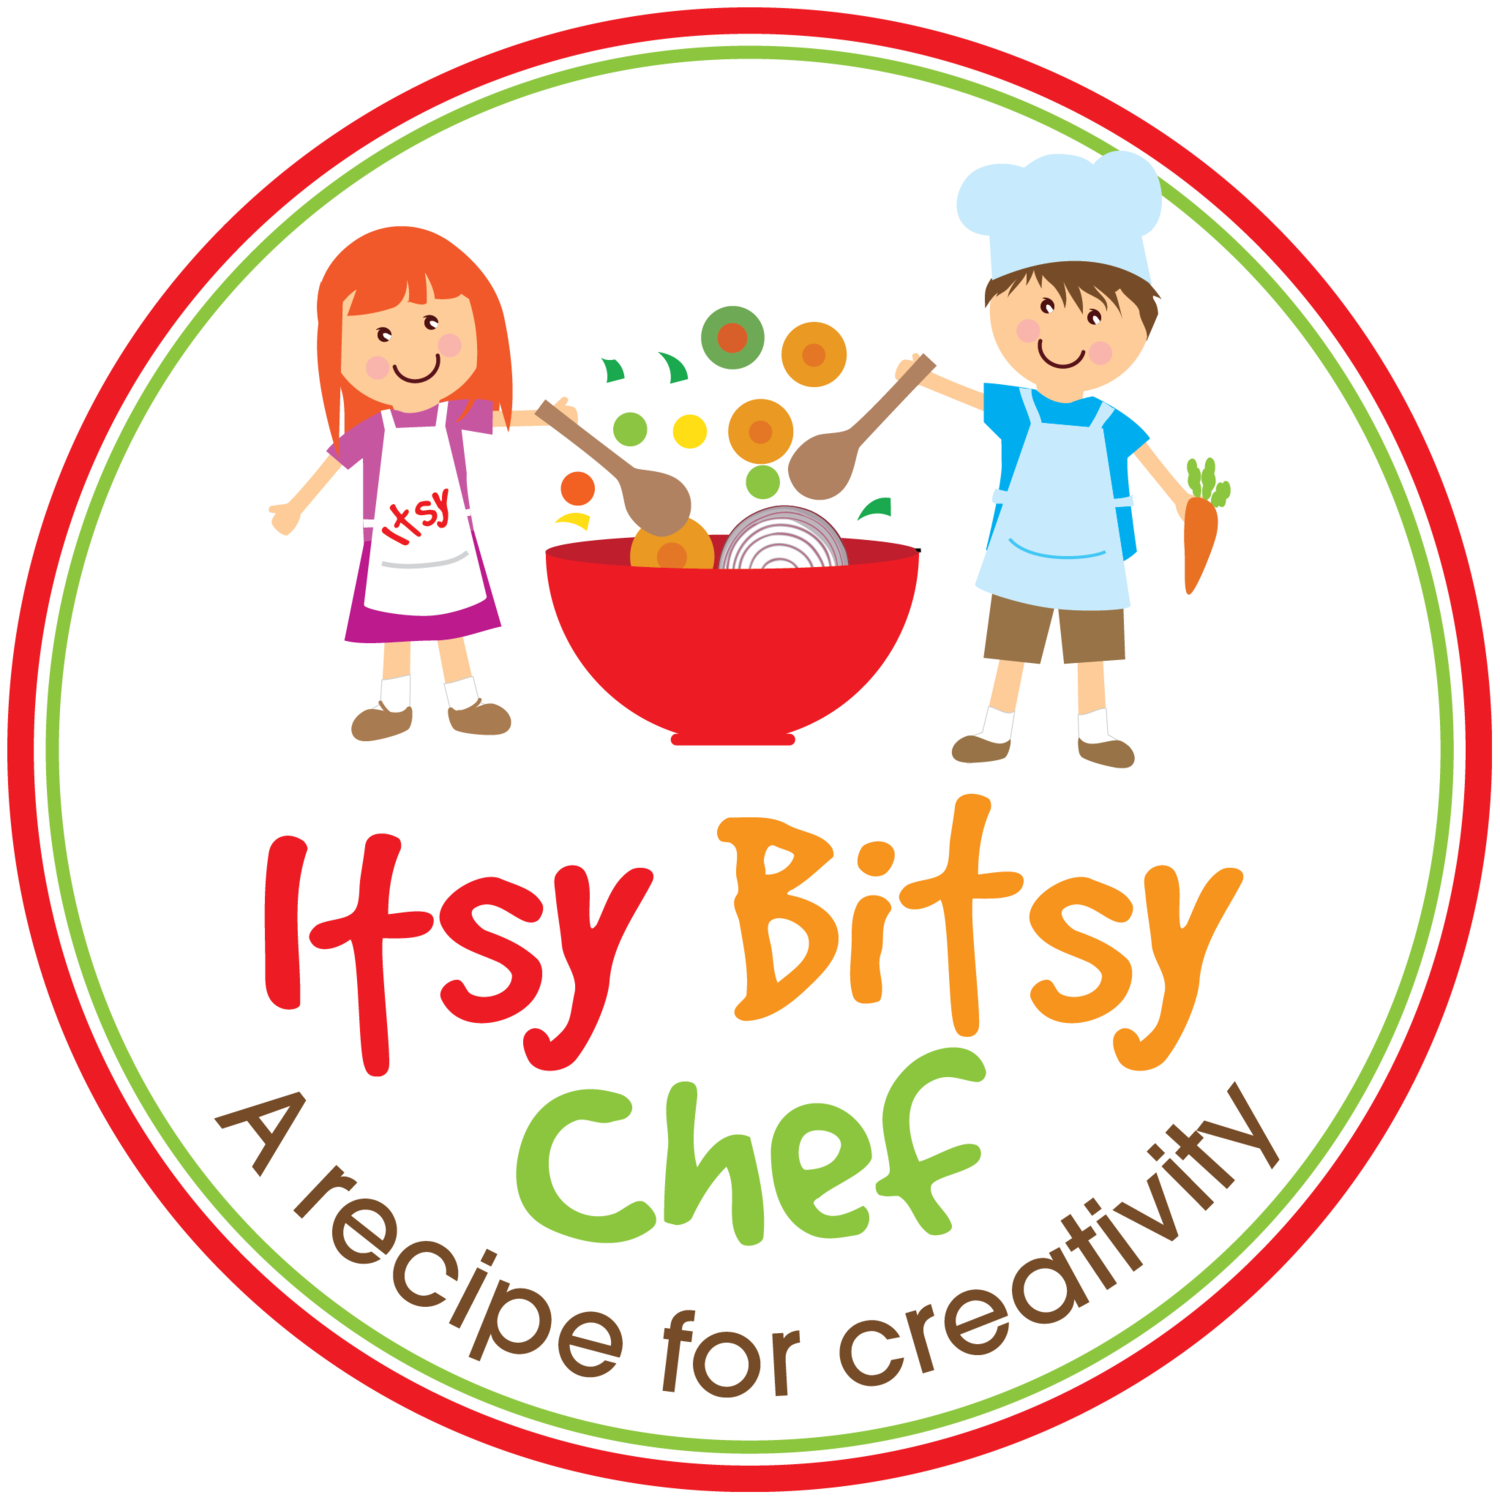 Cook clipart cooking show. Itsy bitsy chef an